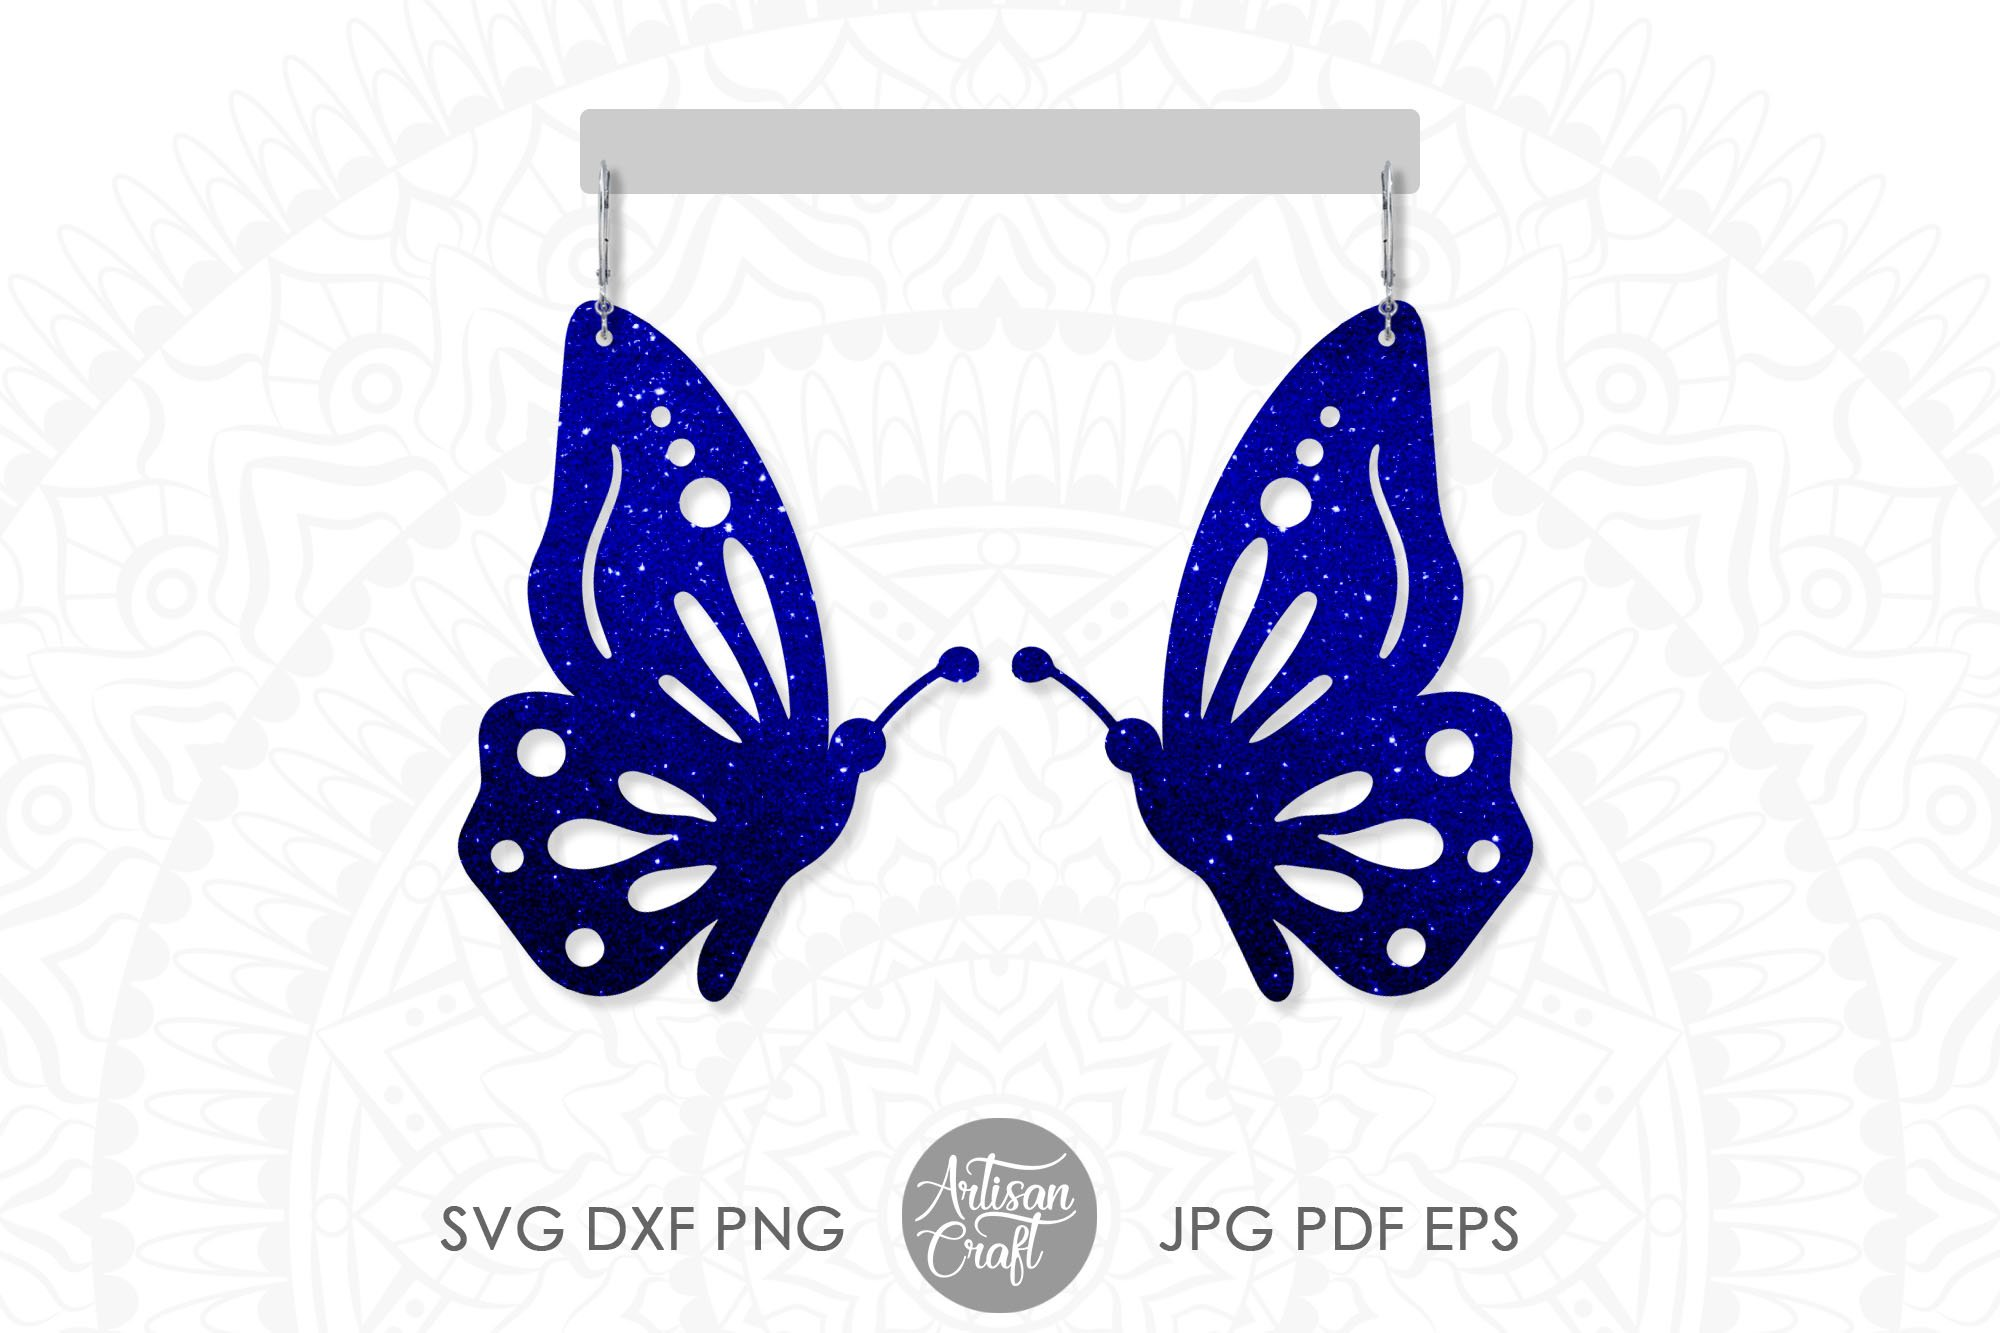 Free Download Svg Cut Files For Cricut And Silhouette Free Butterfly Svg Files For Cricut